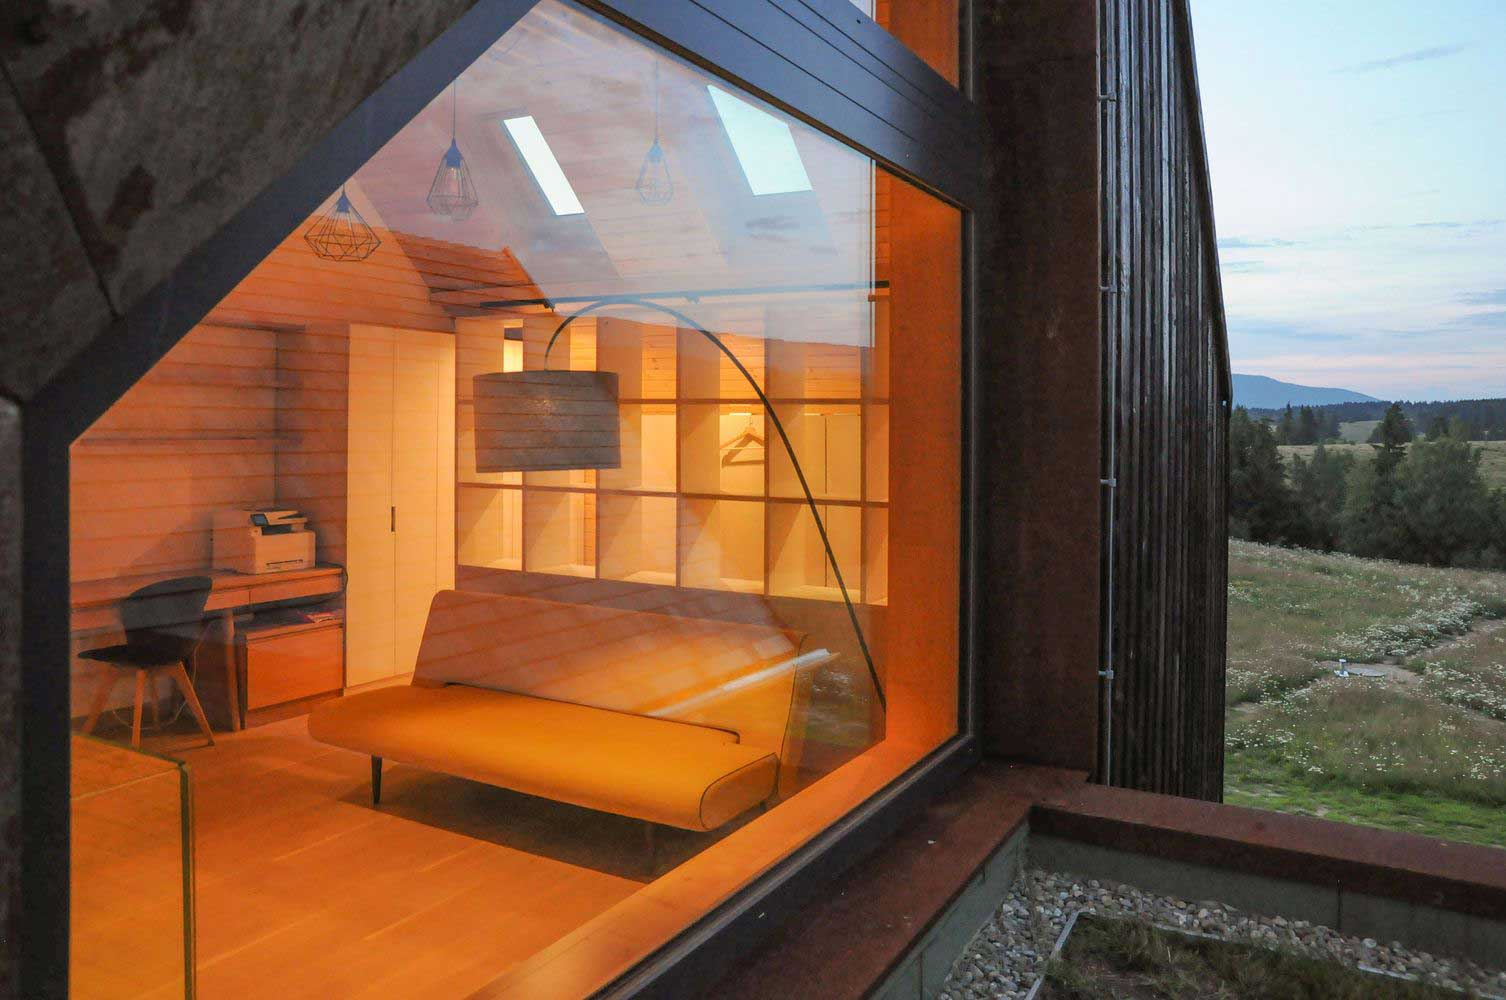 House Style with Panoramic Windows photo, design, ideas, plan, layout, facade, exterior, interior, landscape, courtyard, decoration, cladding